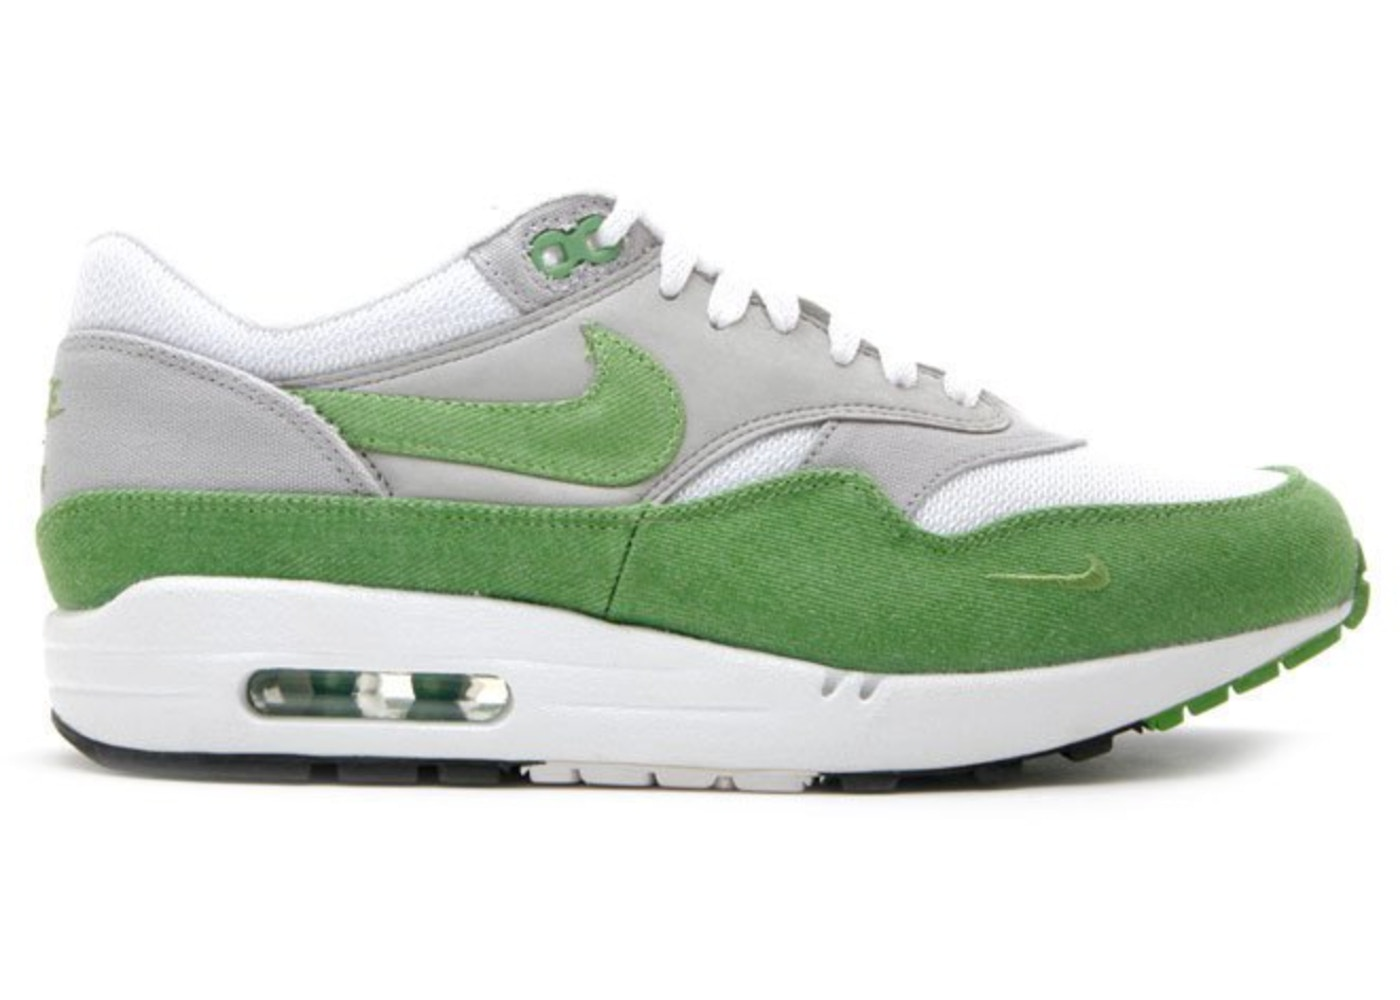 new style 54710 0a675 Buy Nike Air Max 1 Shoes   Deadstock Sneakers